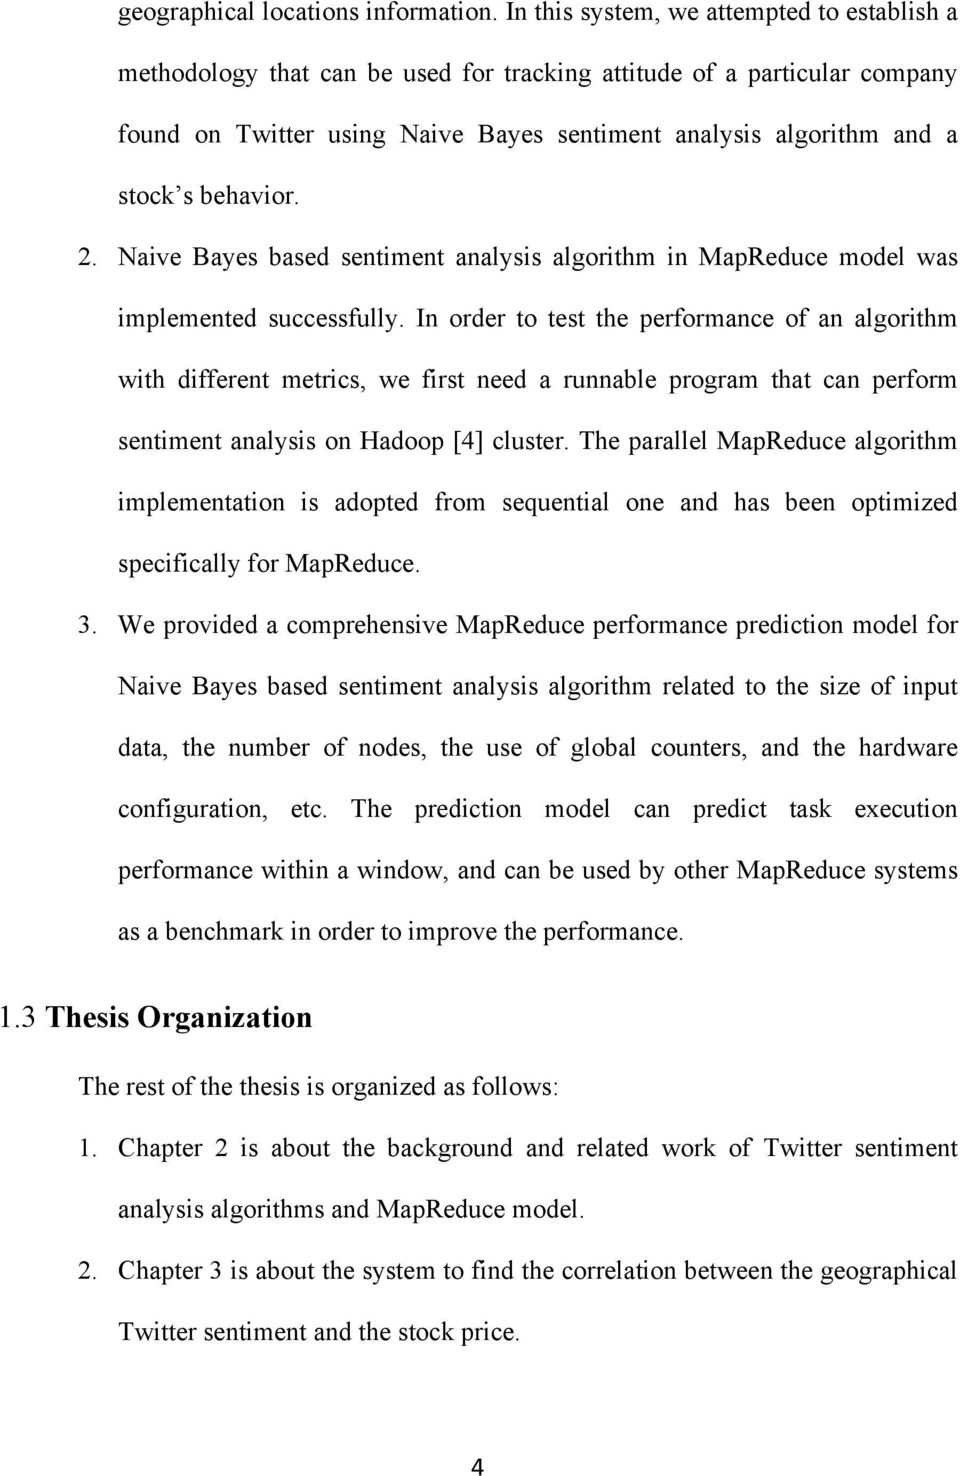 behavior. 2. Naive Bayes based sentiment analysis algorithm in MapReduce model was implemented successfully.